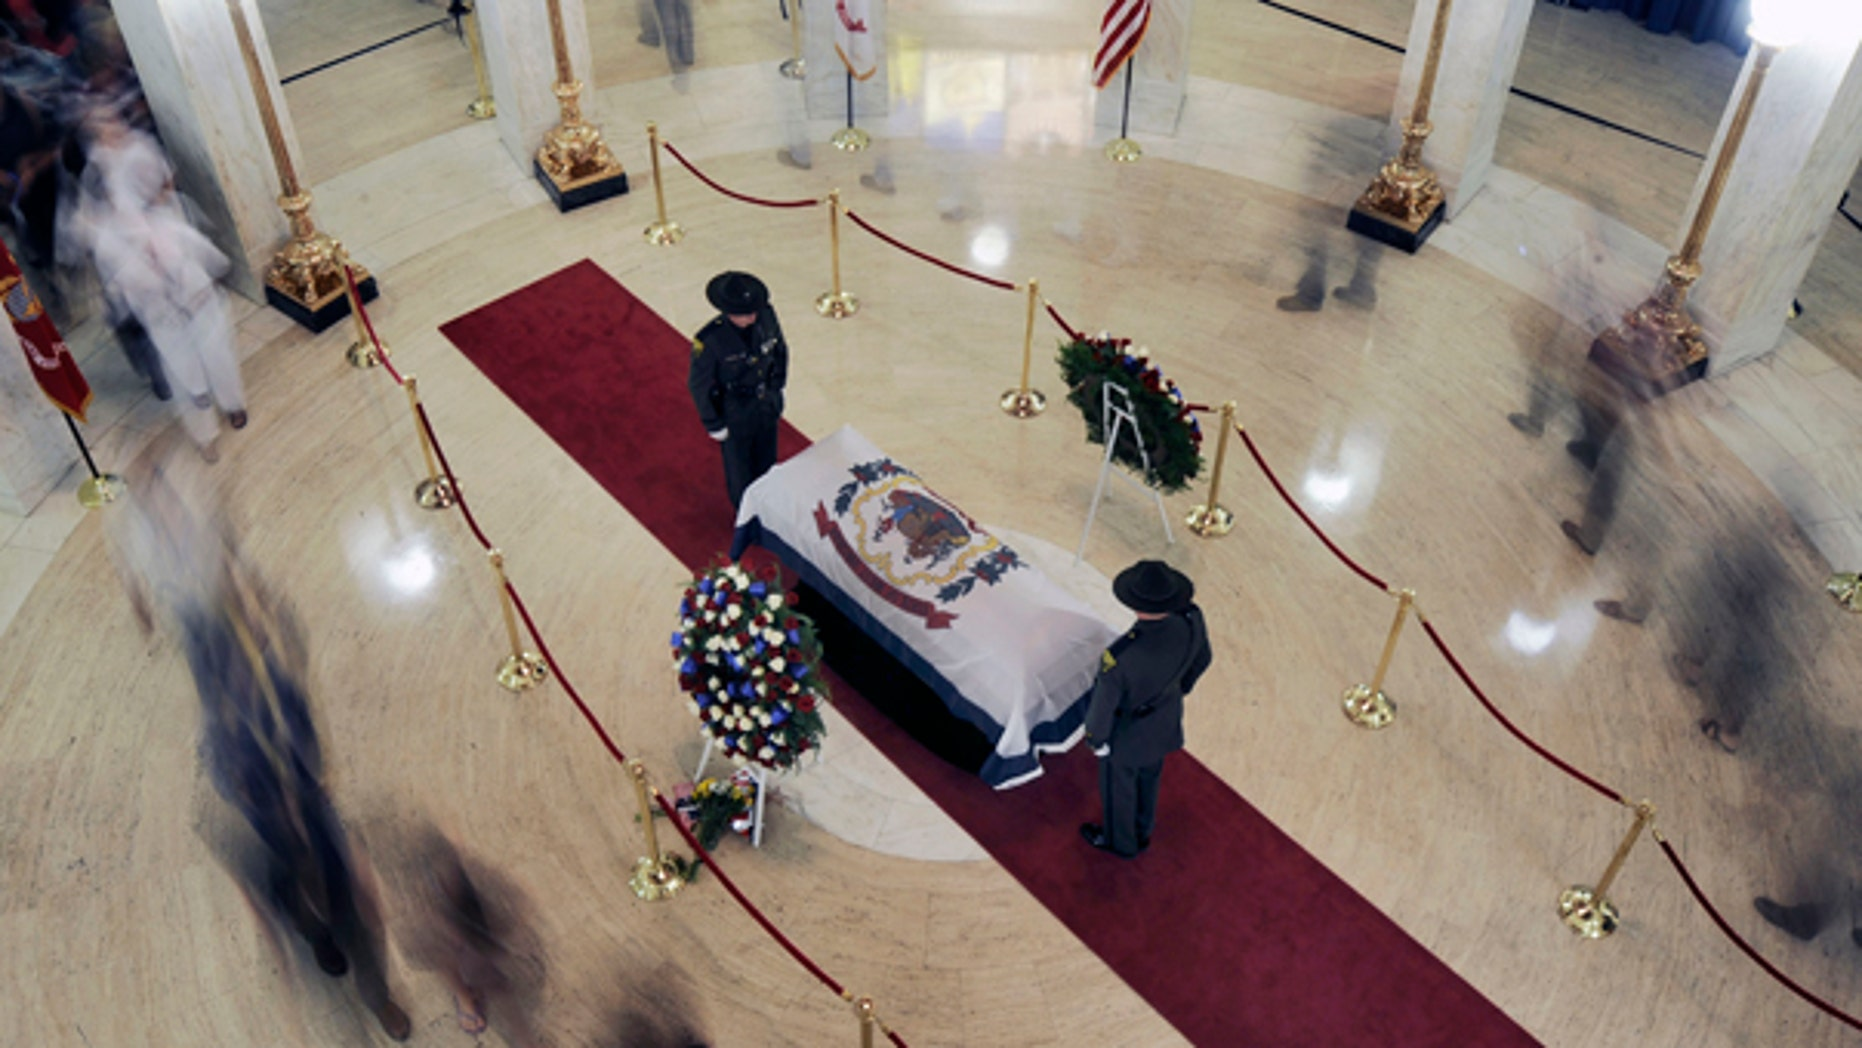 July 1: People file past Sen. Byrd's casket in the Charleston, W.Va. capitol building.